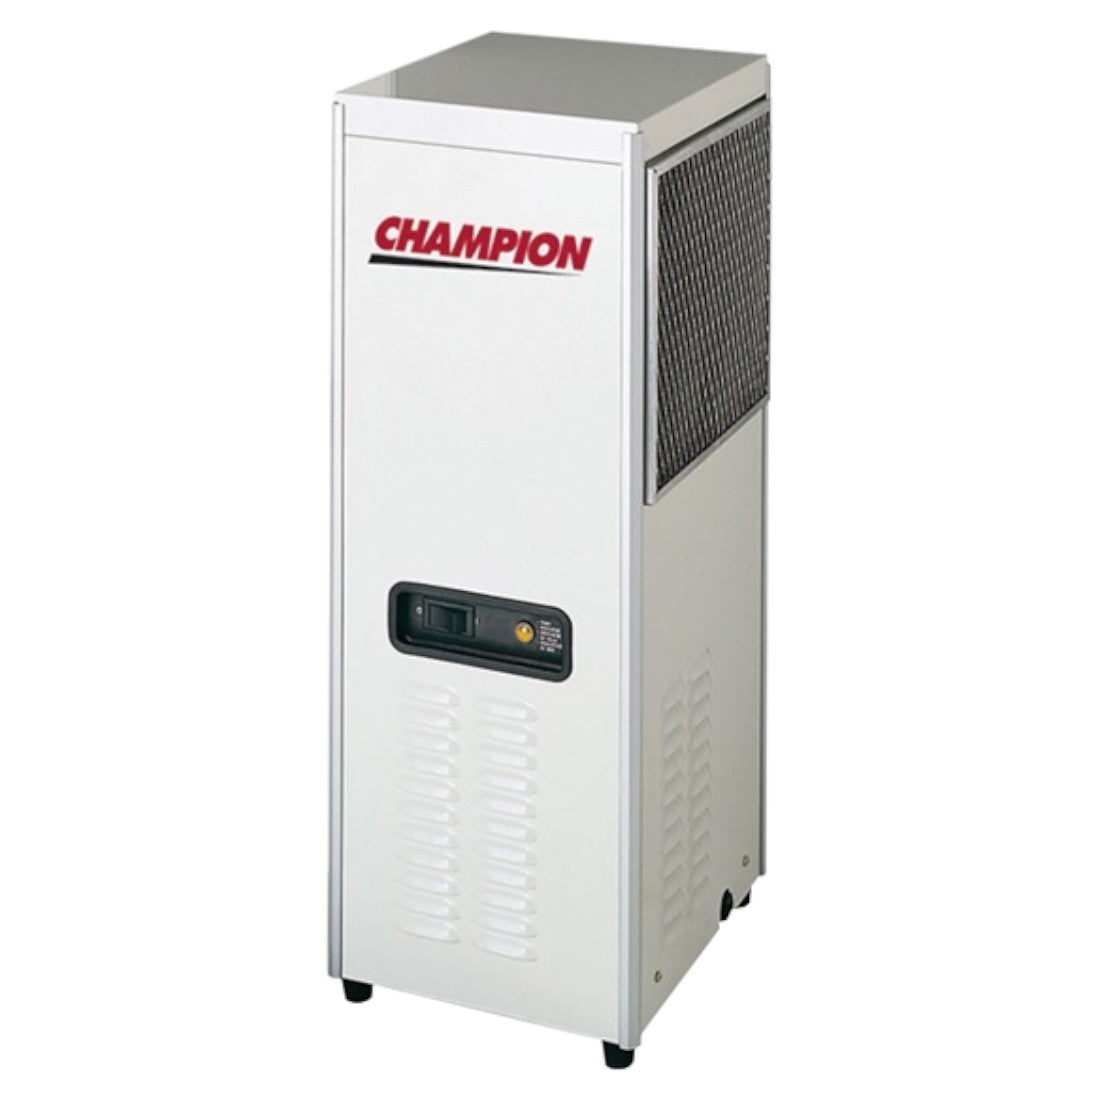 Champion CRH50 High Inlet Temperature Refrigerated Dryer